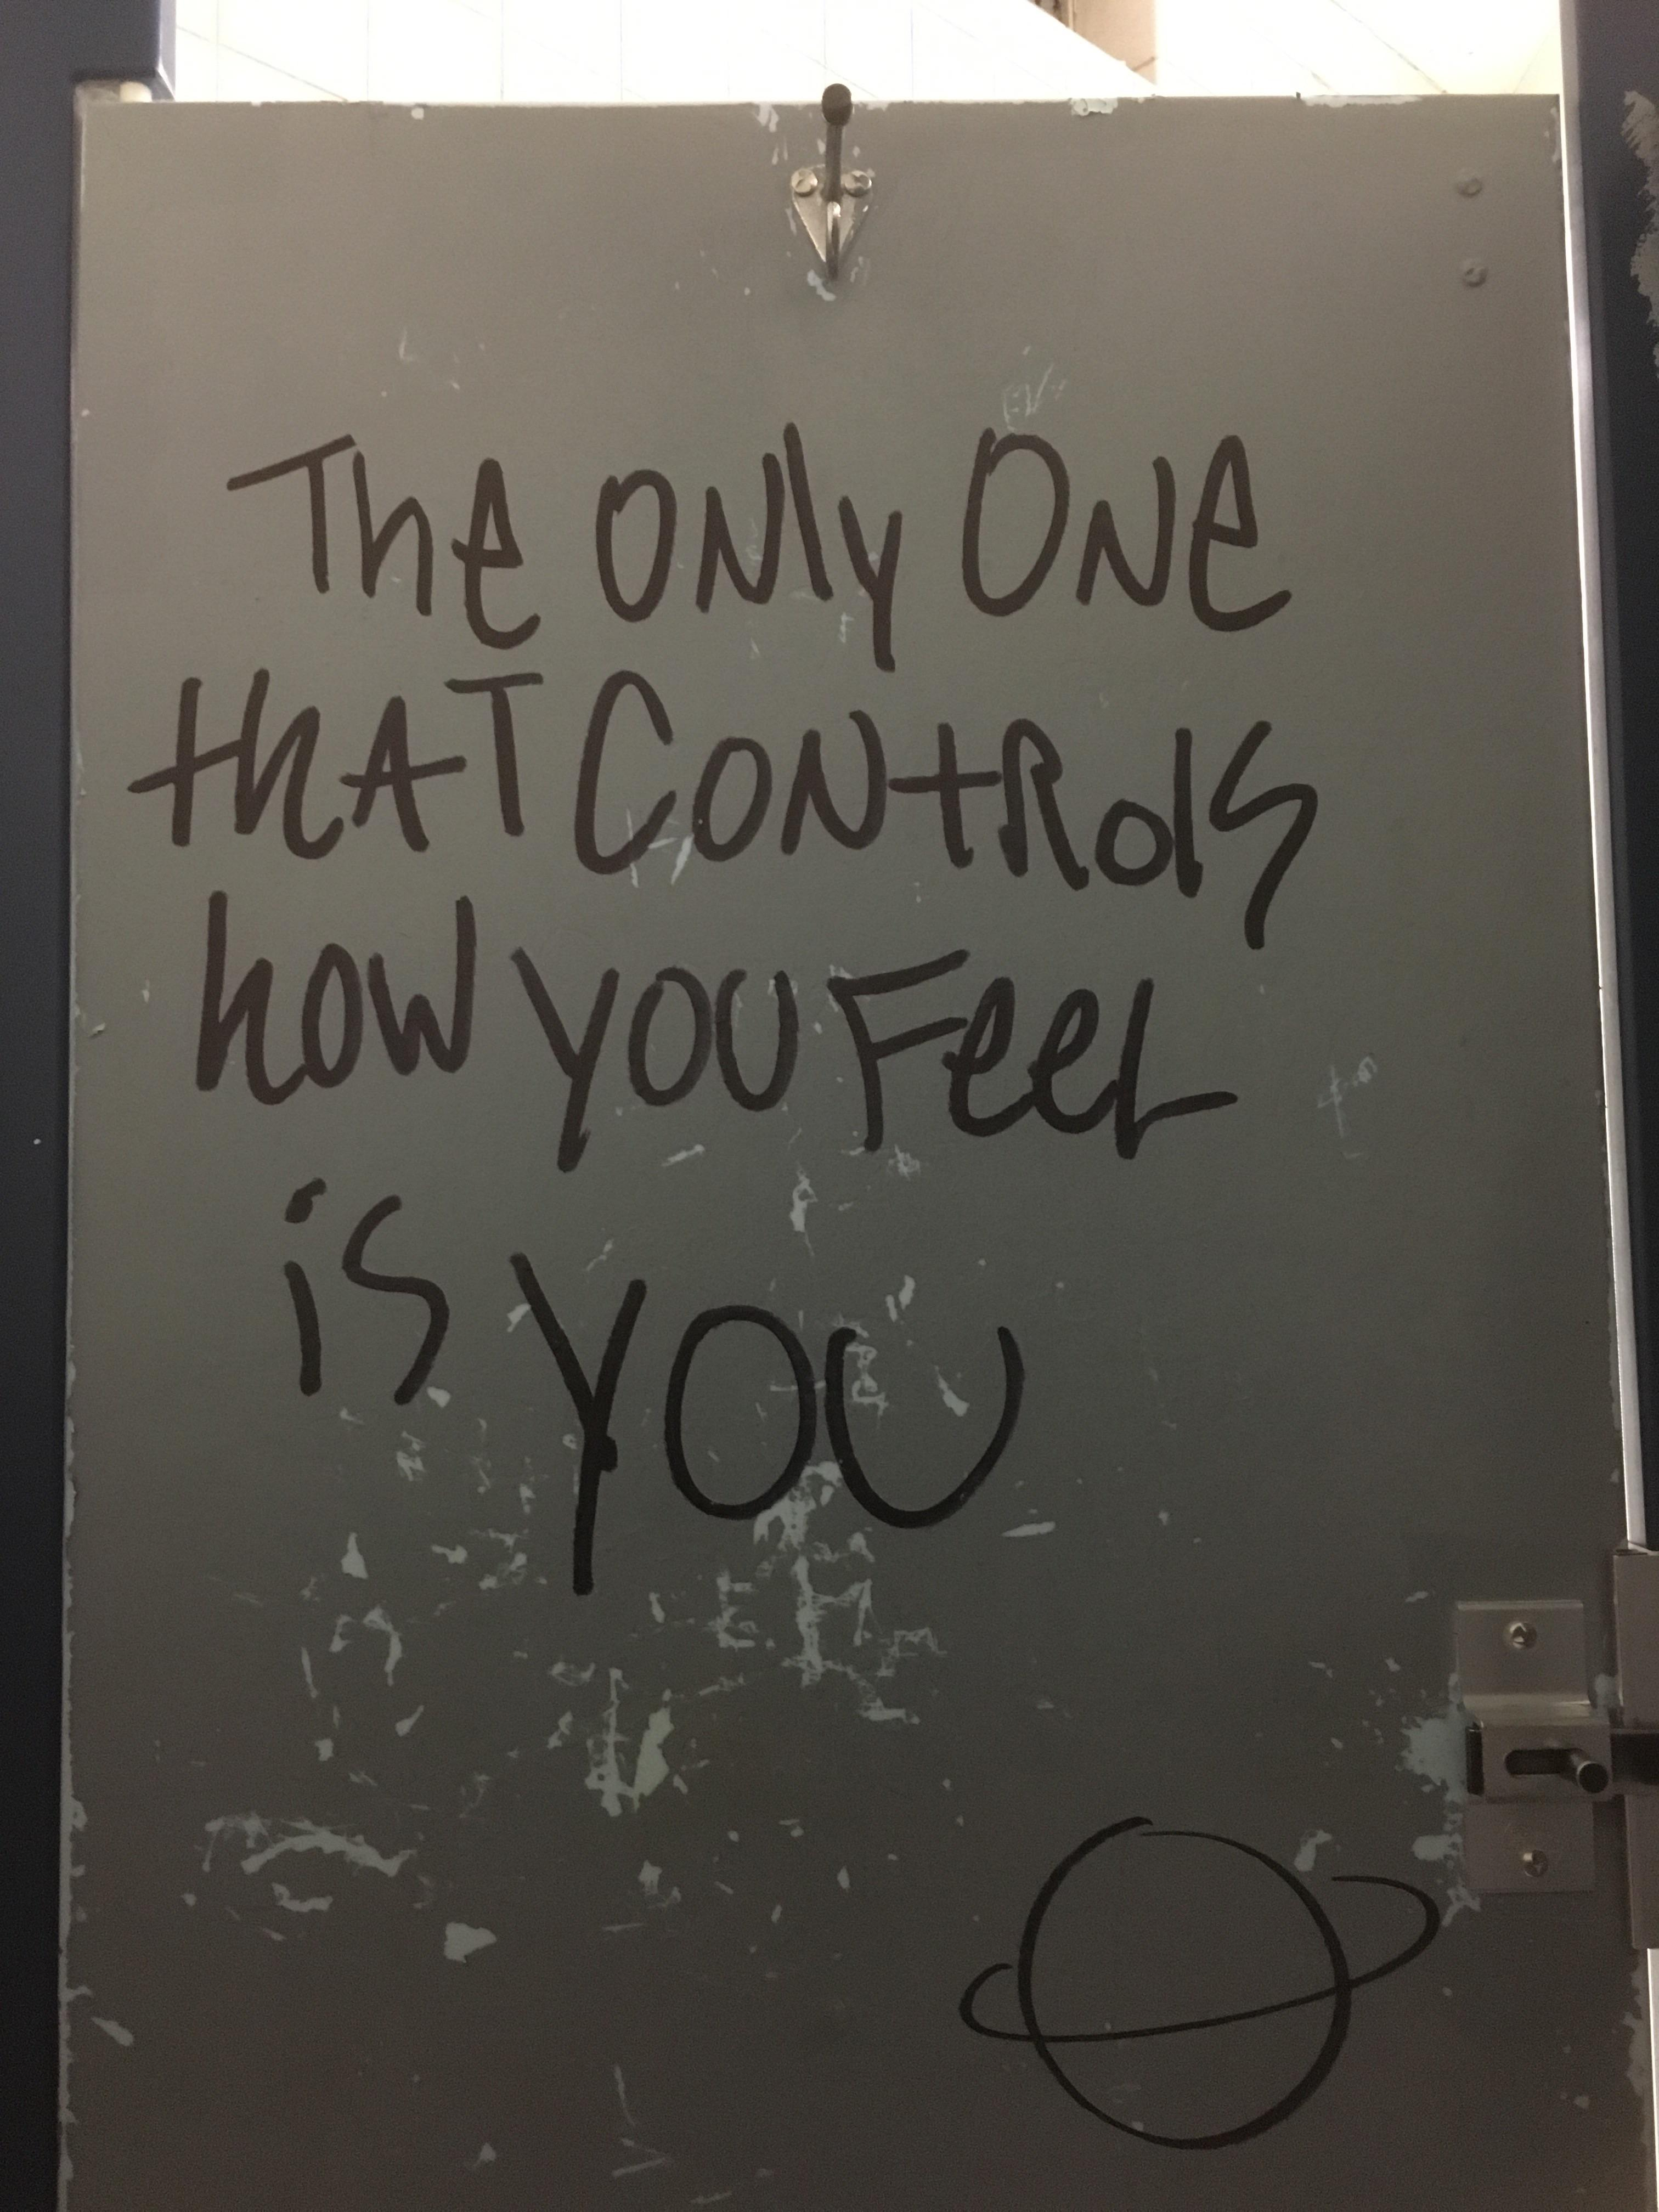 The only one that controls how you feel is you.